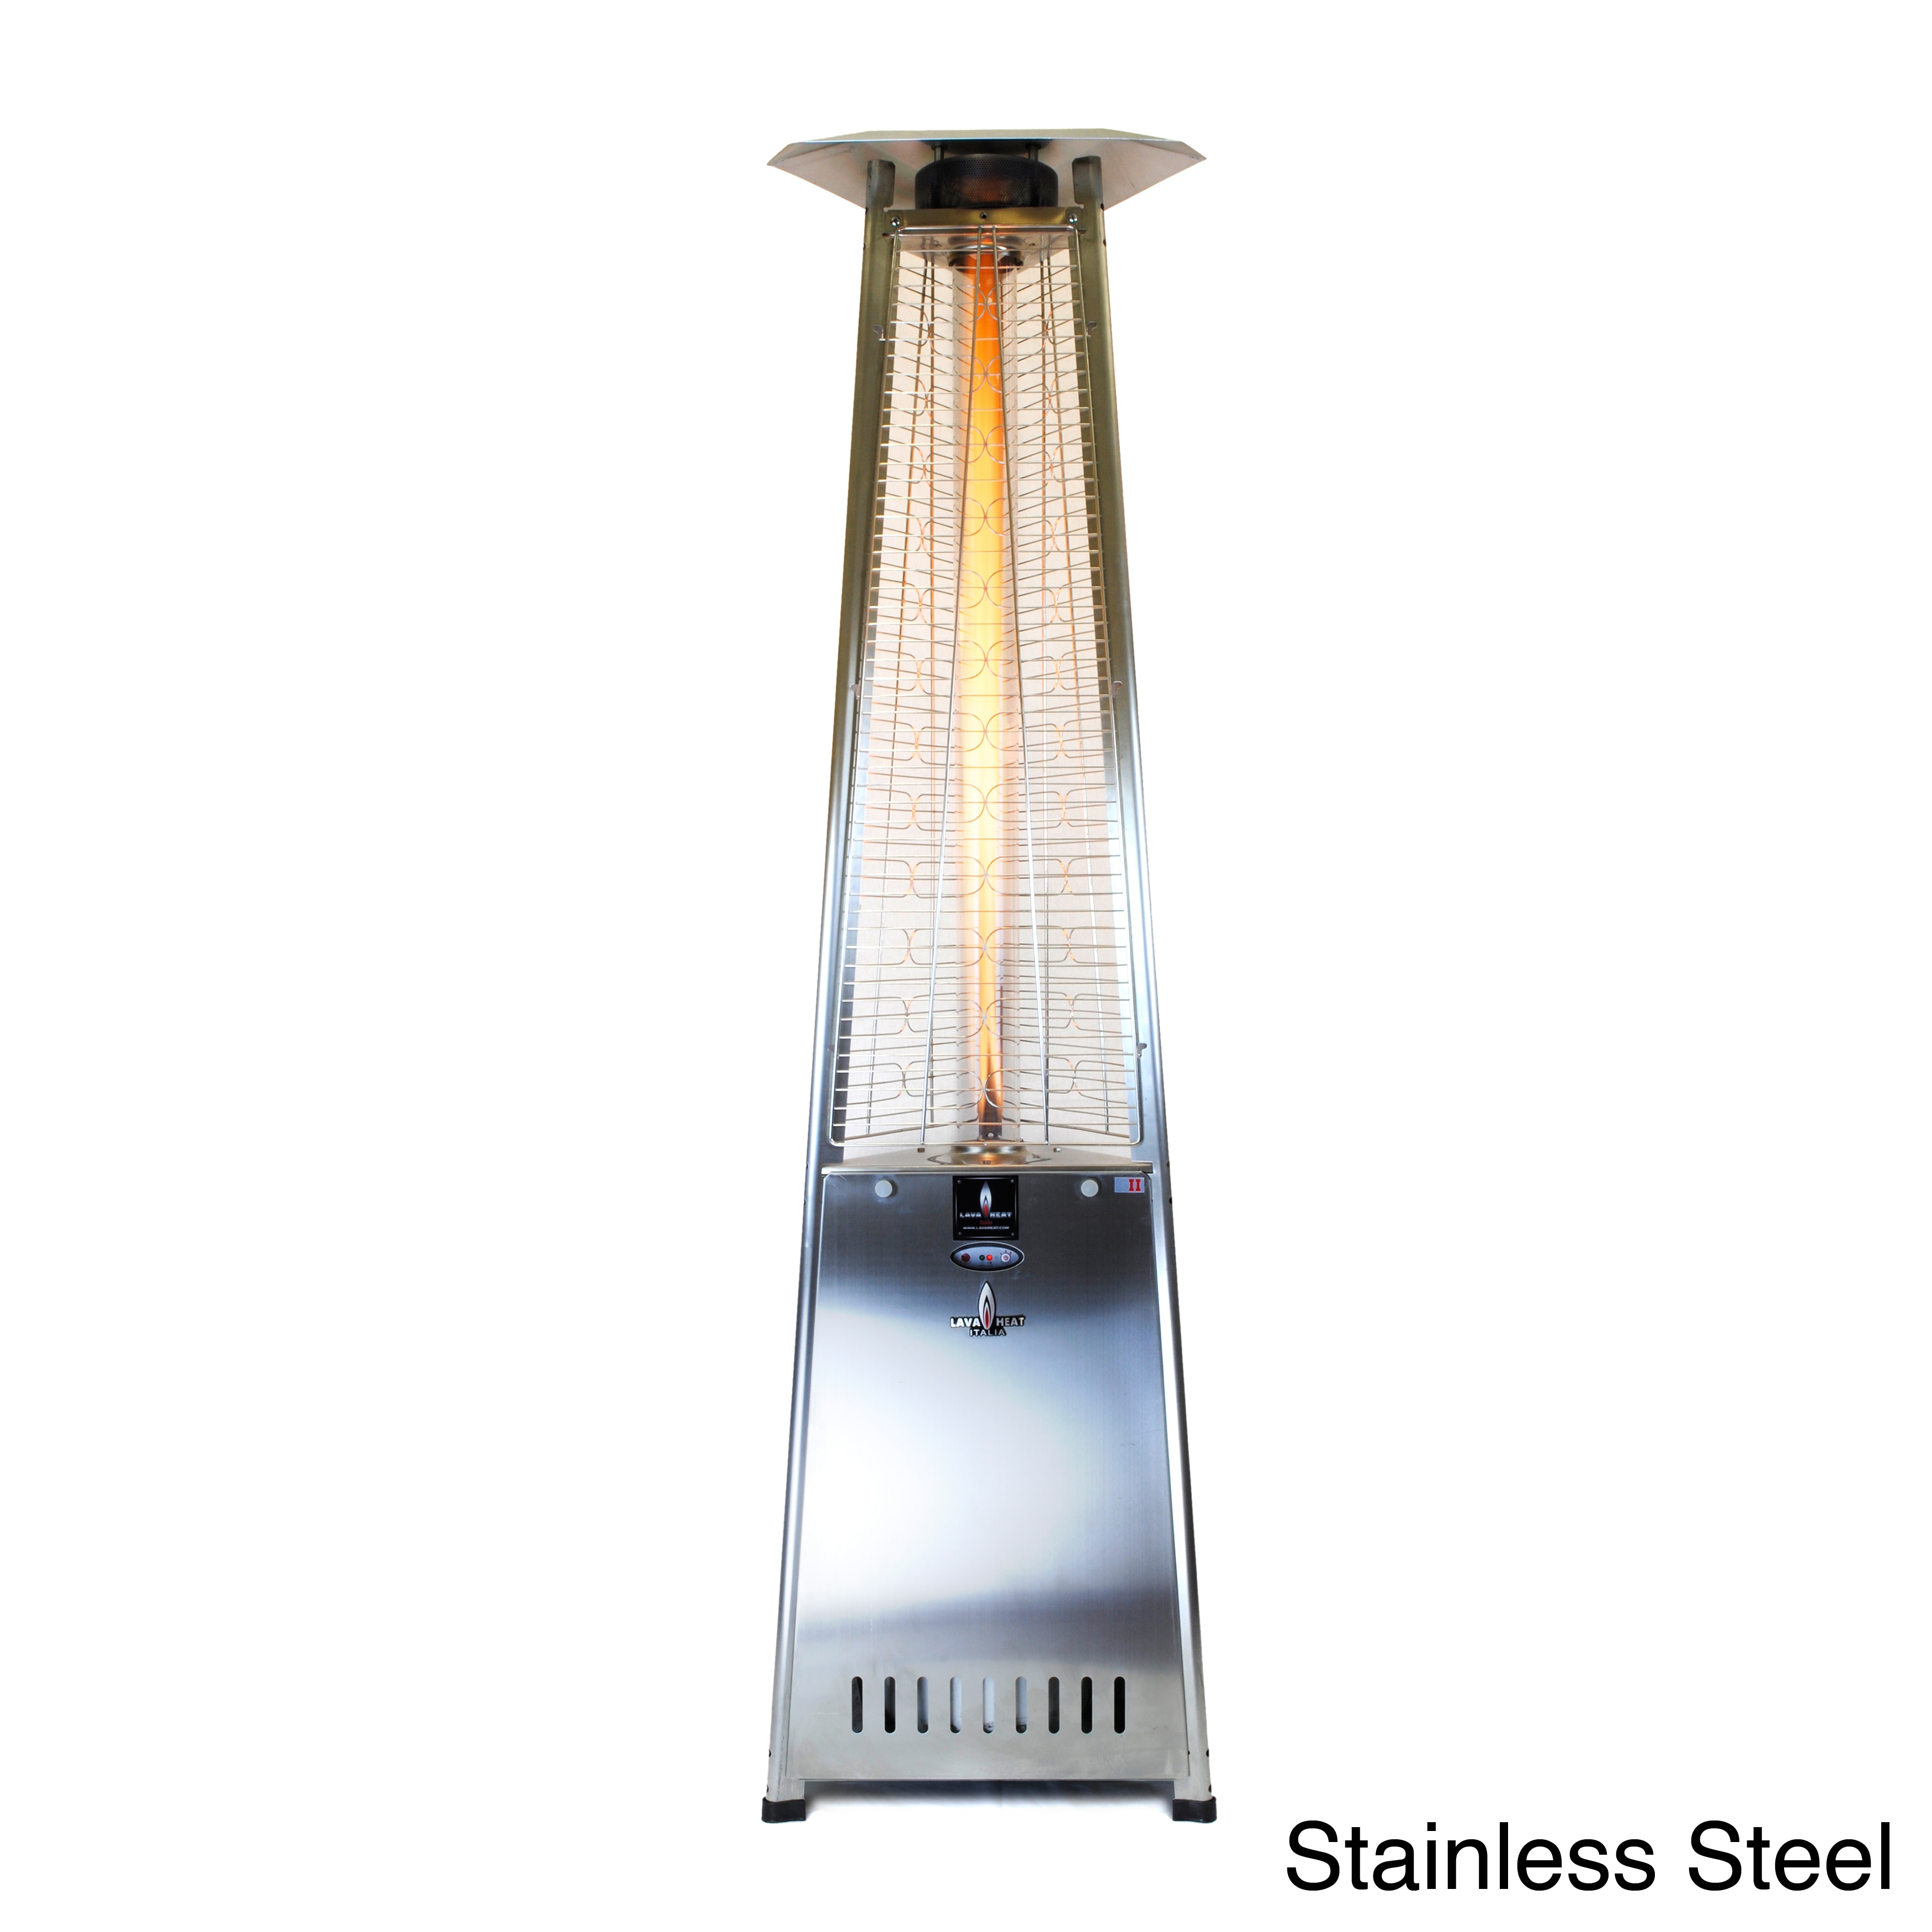 Lava Heat 2G 66 000 BTU mercial Outdoor Patio Heater Free